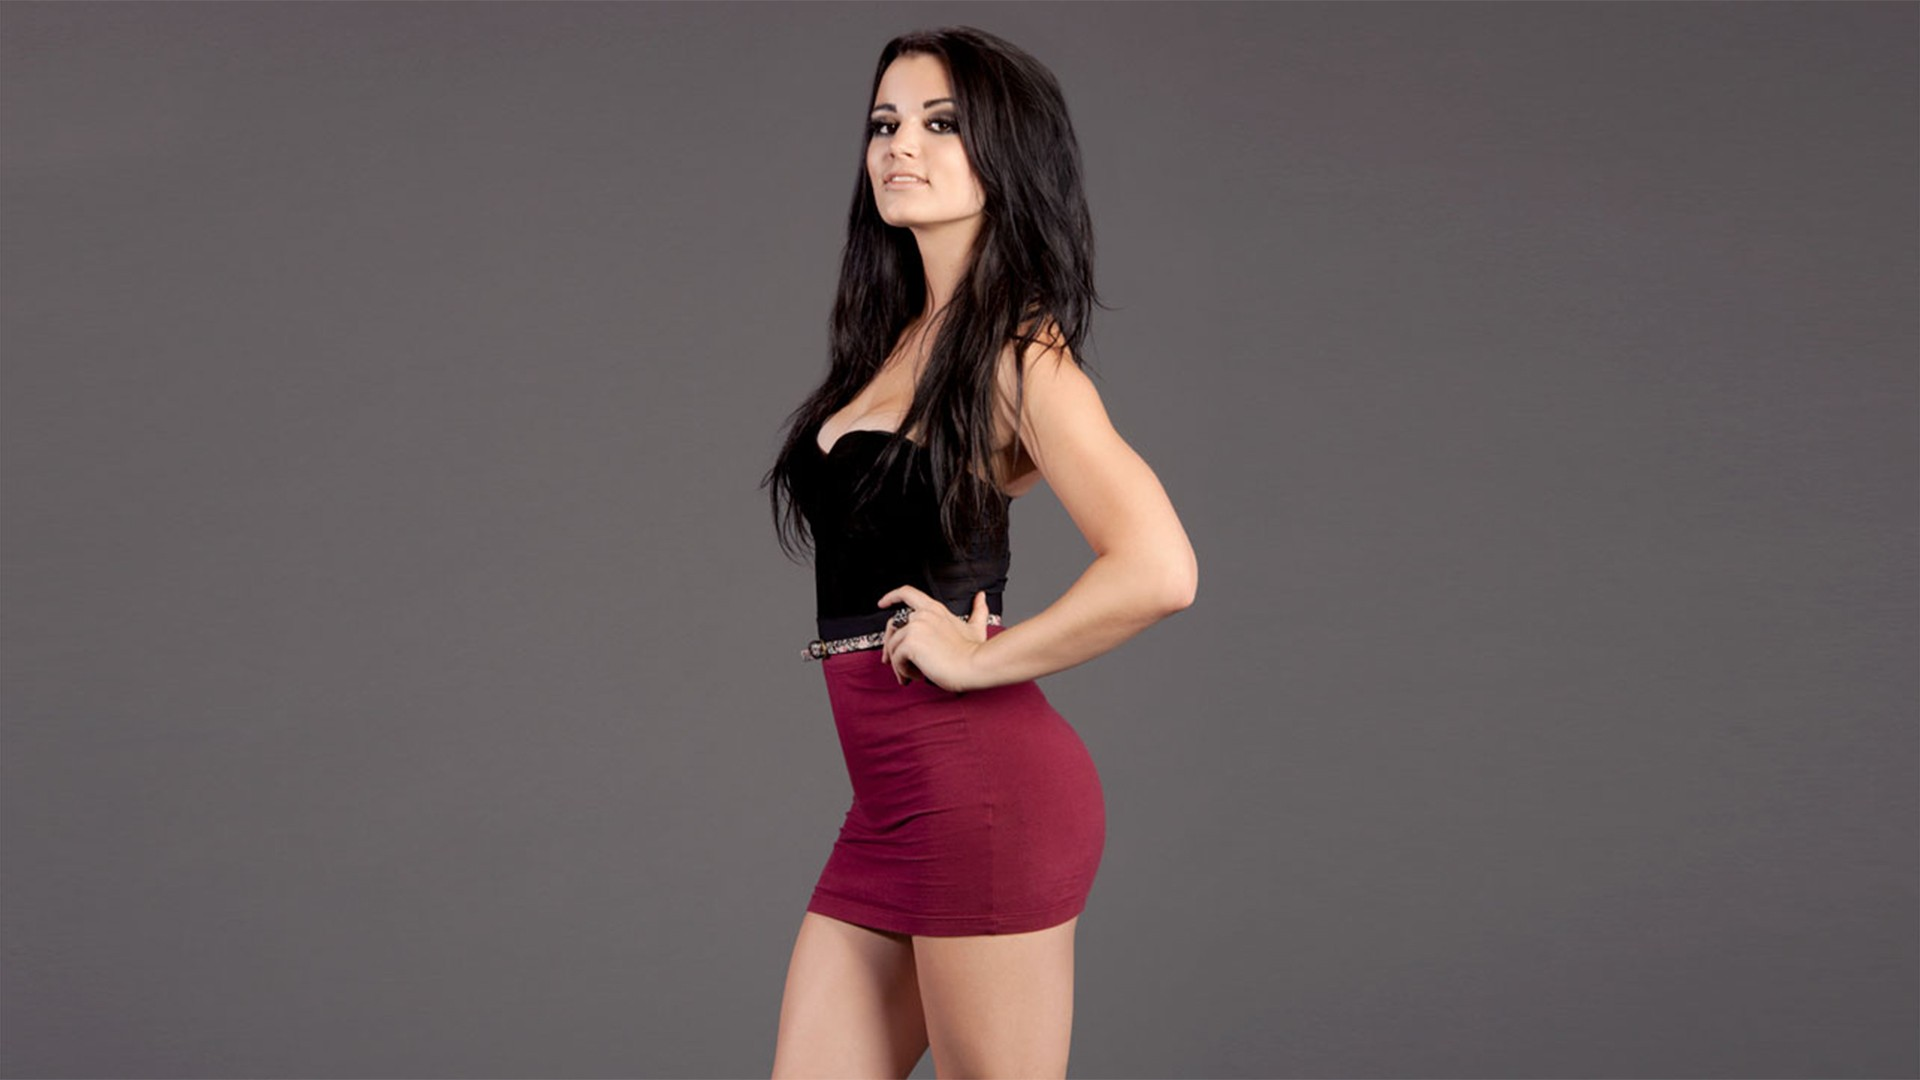 Wallpaper of Saraya Jade Bevis WWE background HD image 1920x1080